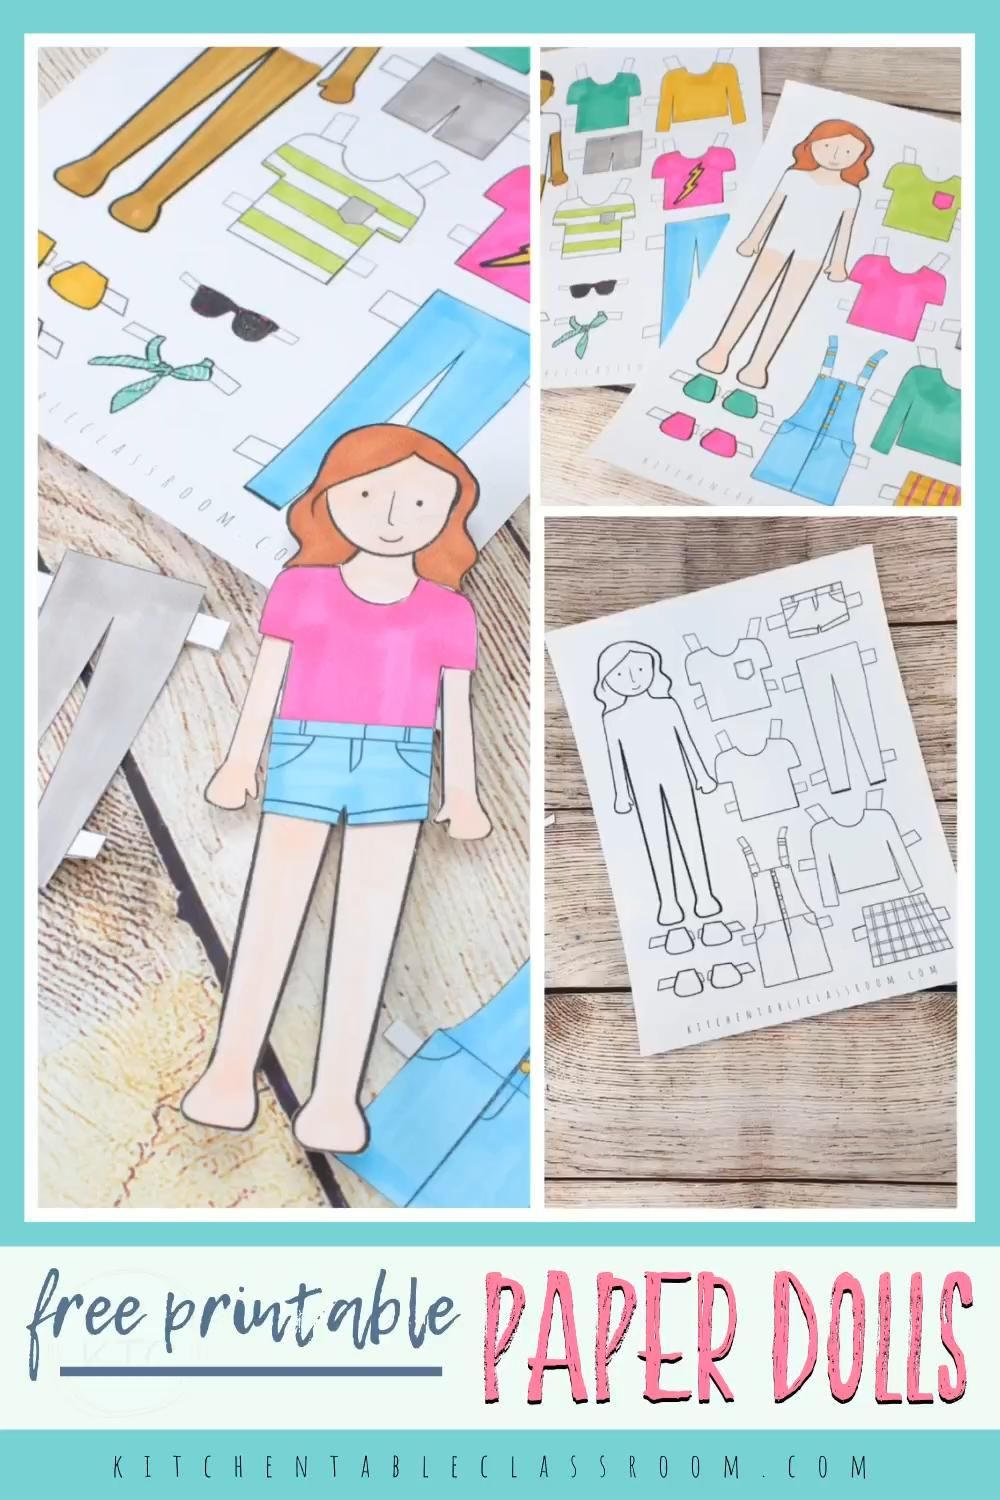 These free printable paper templates have both a boy and a girl doll.  They print in black and white and are ready for your little artist to add their own color and personality!